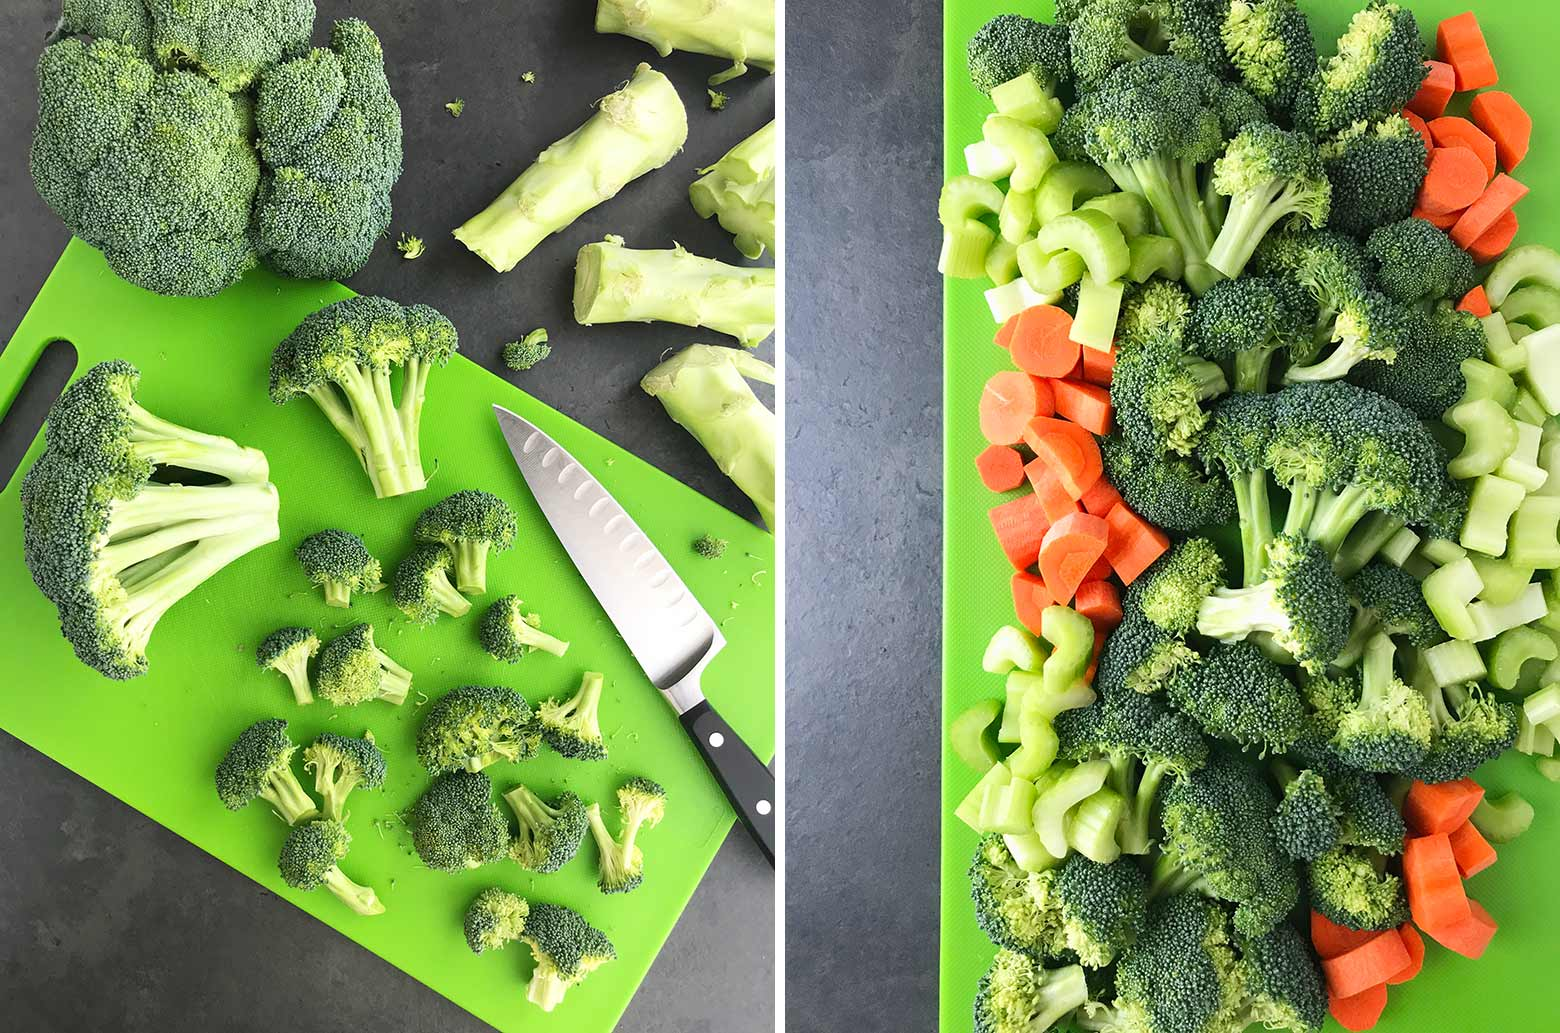 Chopped broccoli and other veggies on a green cutting board.